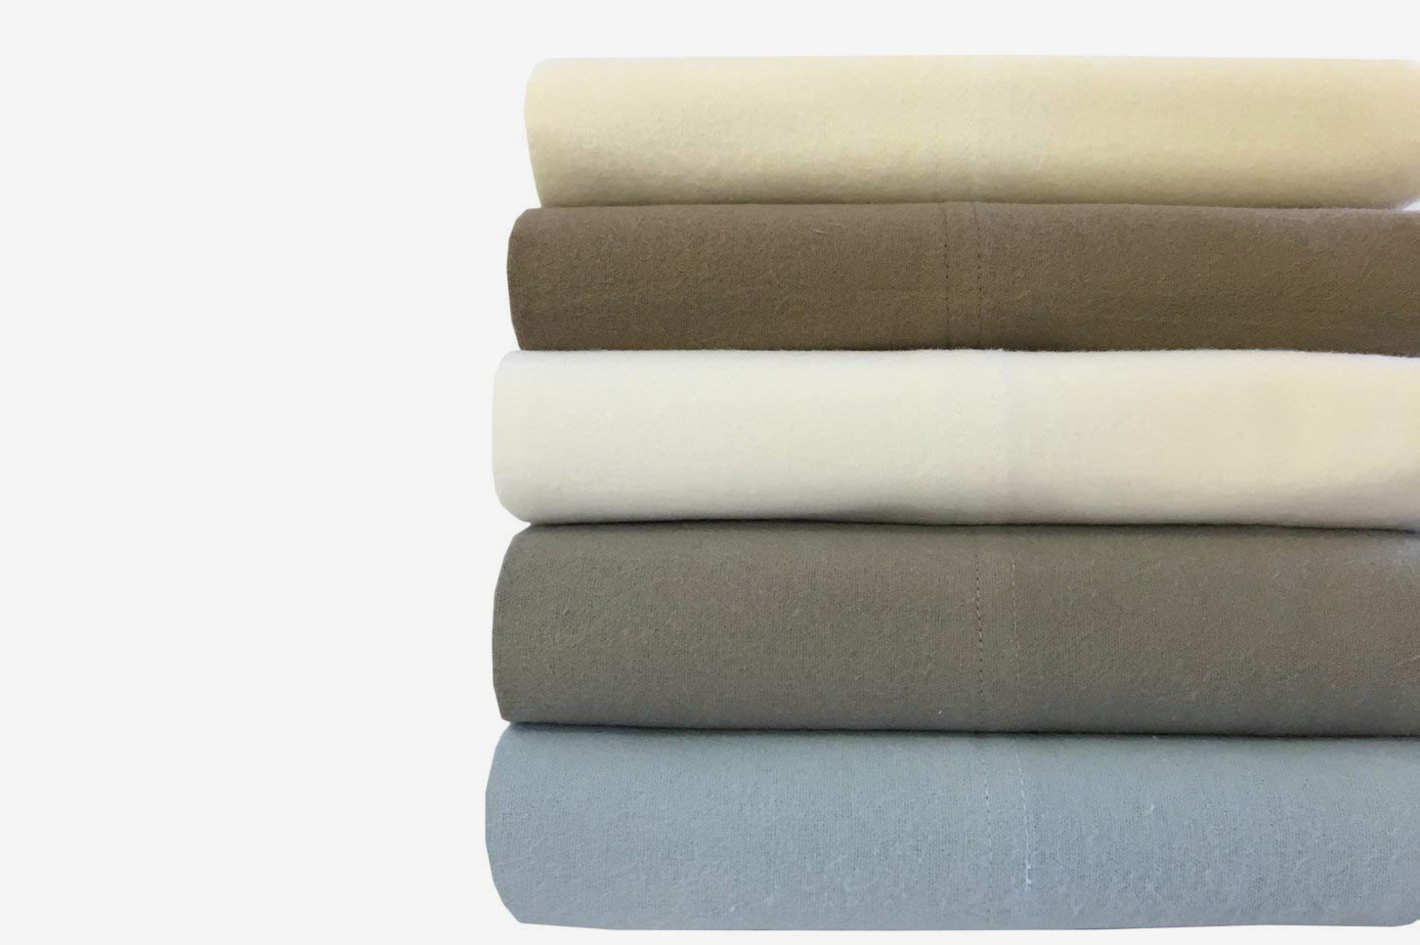 Royal Hotel Heavy Soft 100% Cotton Flannel Sheets (Queen)